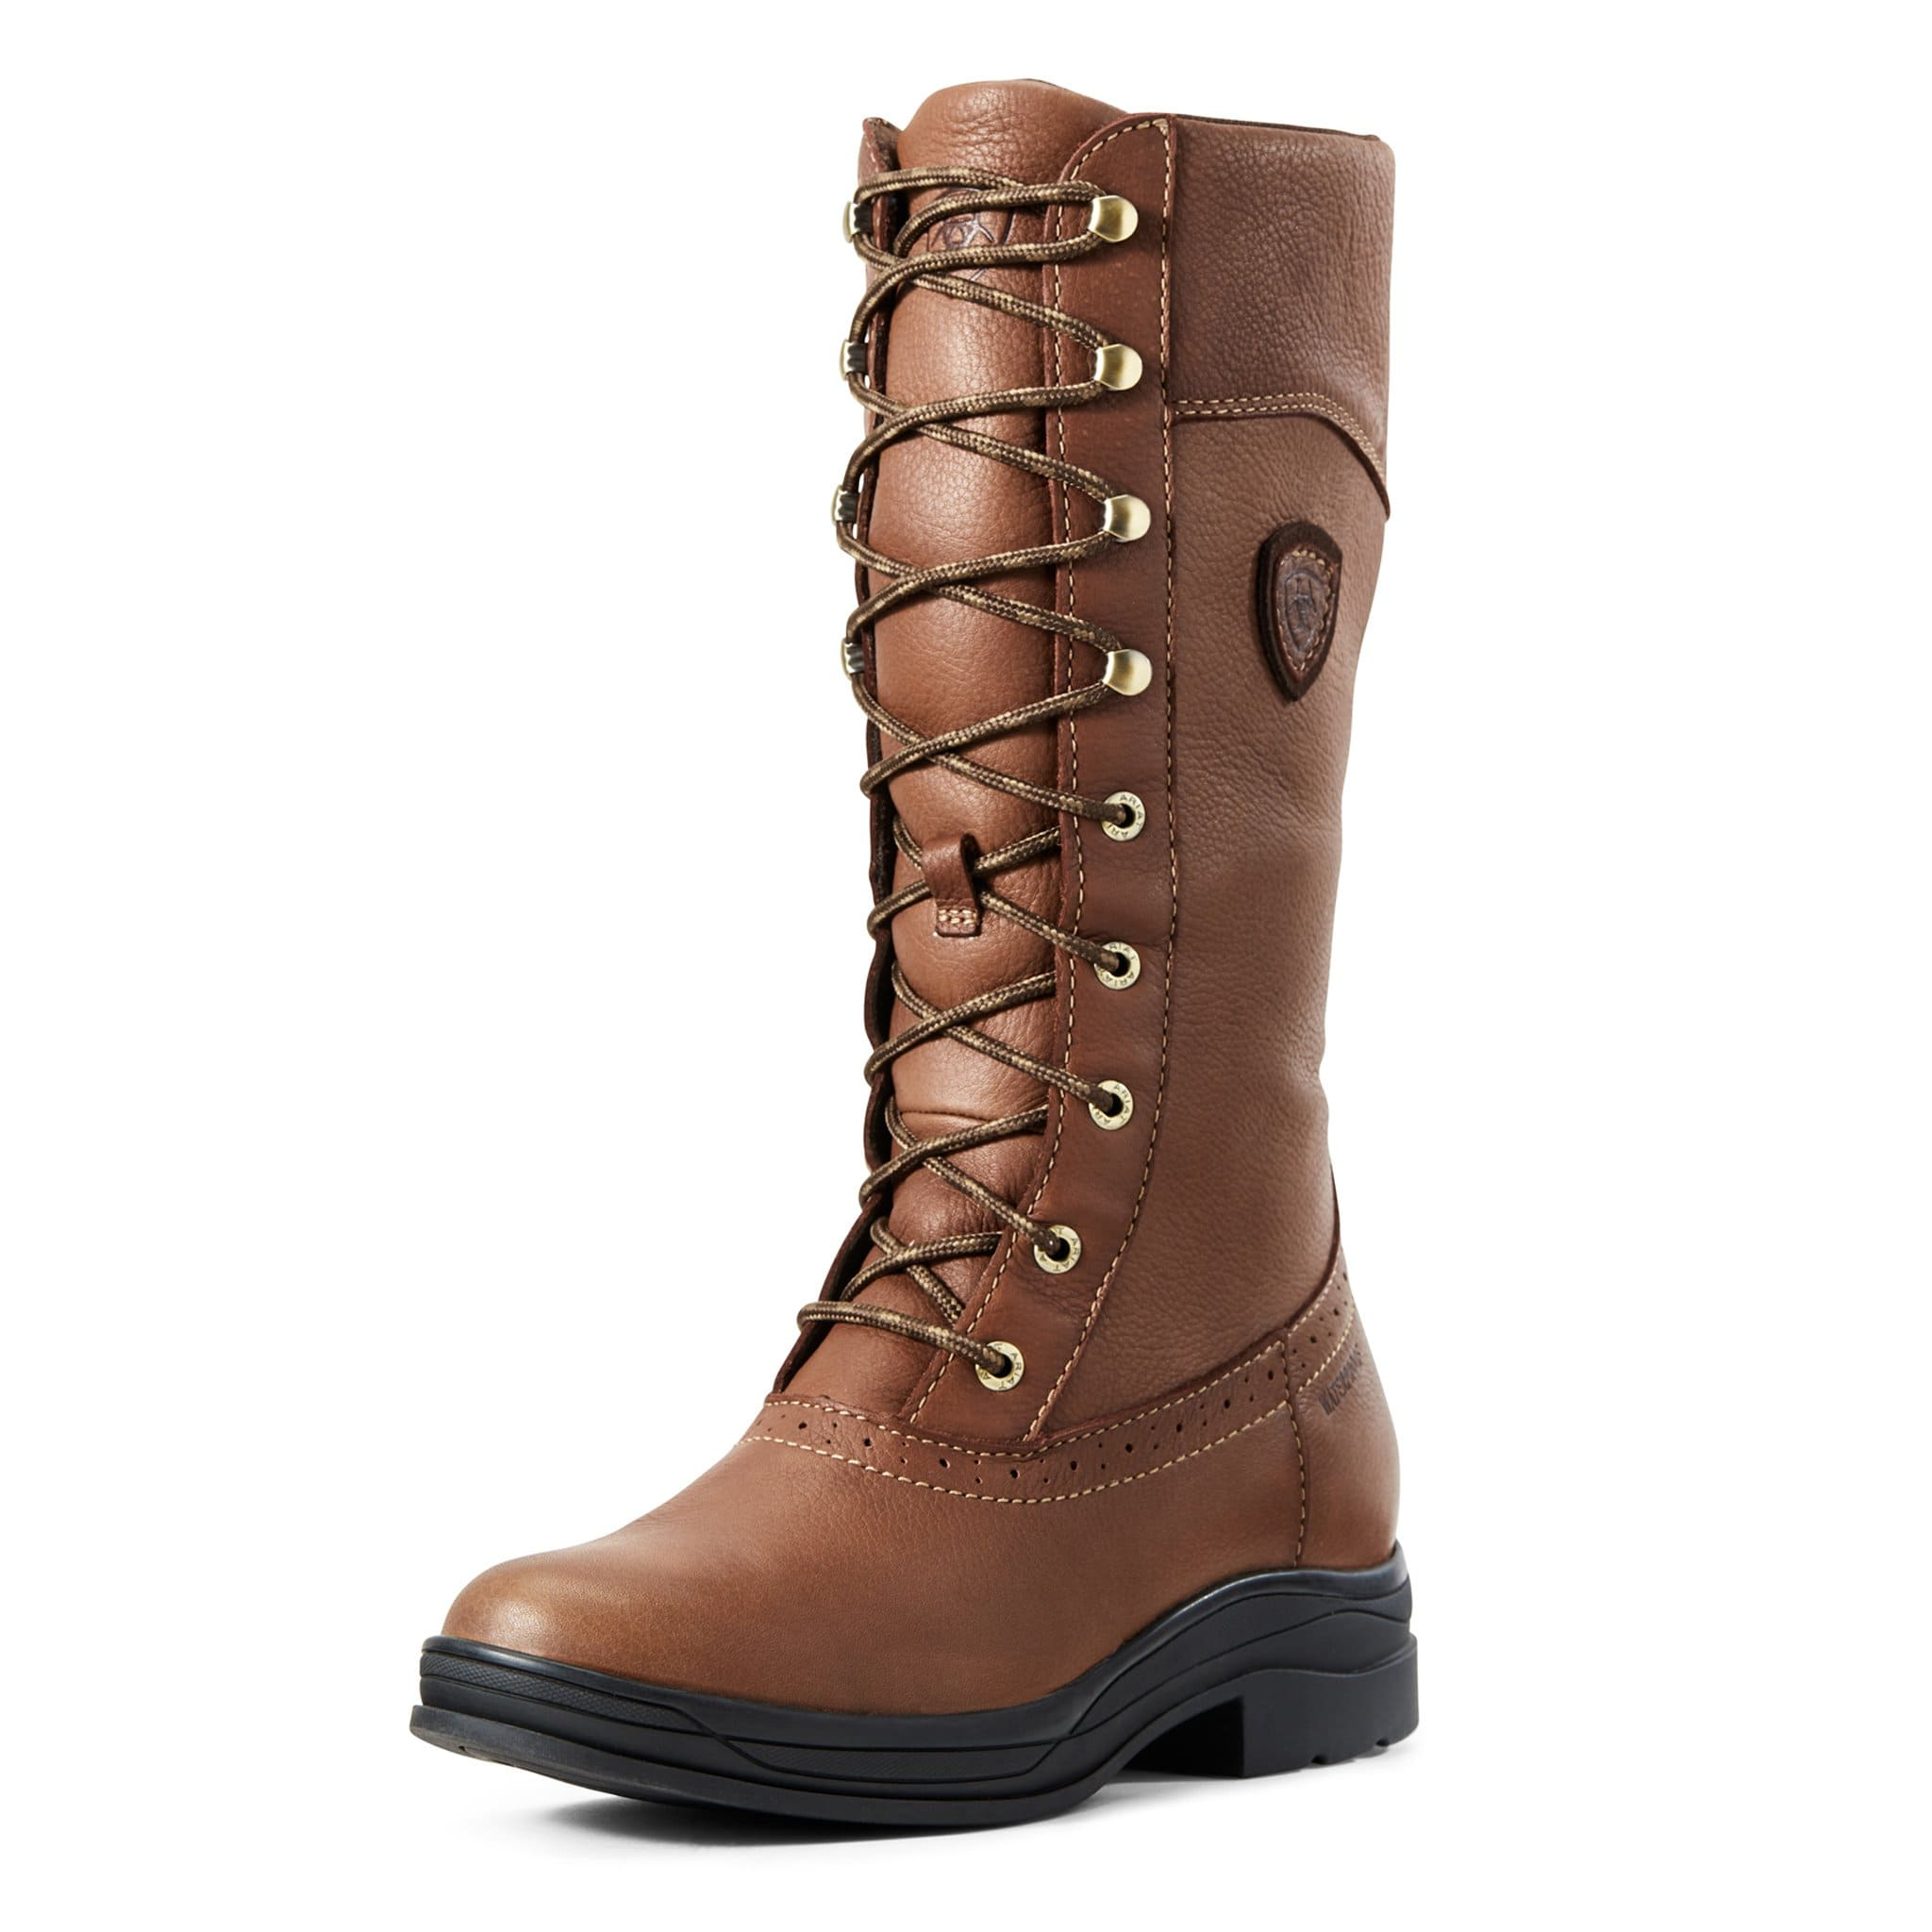 Ariat Wythburn Waterproof Boots 10029561 Brick Brown Front